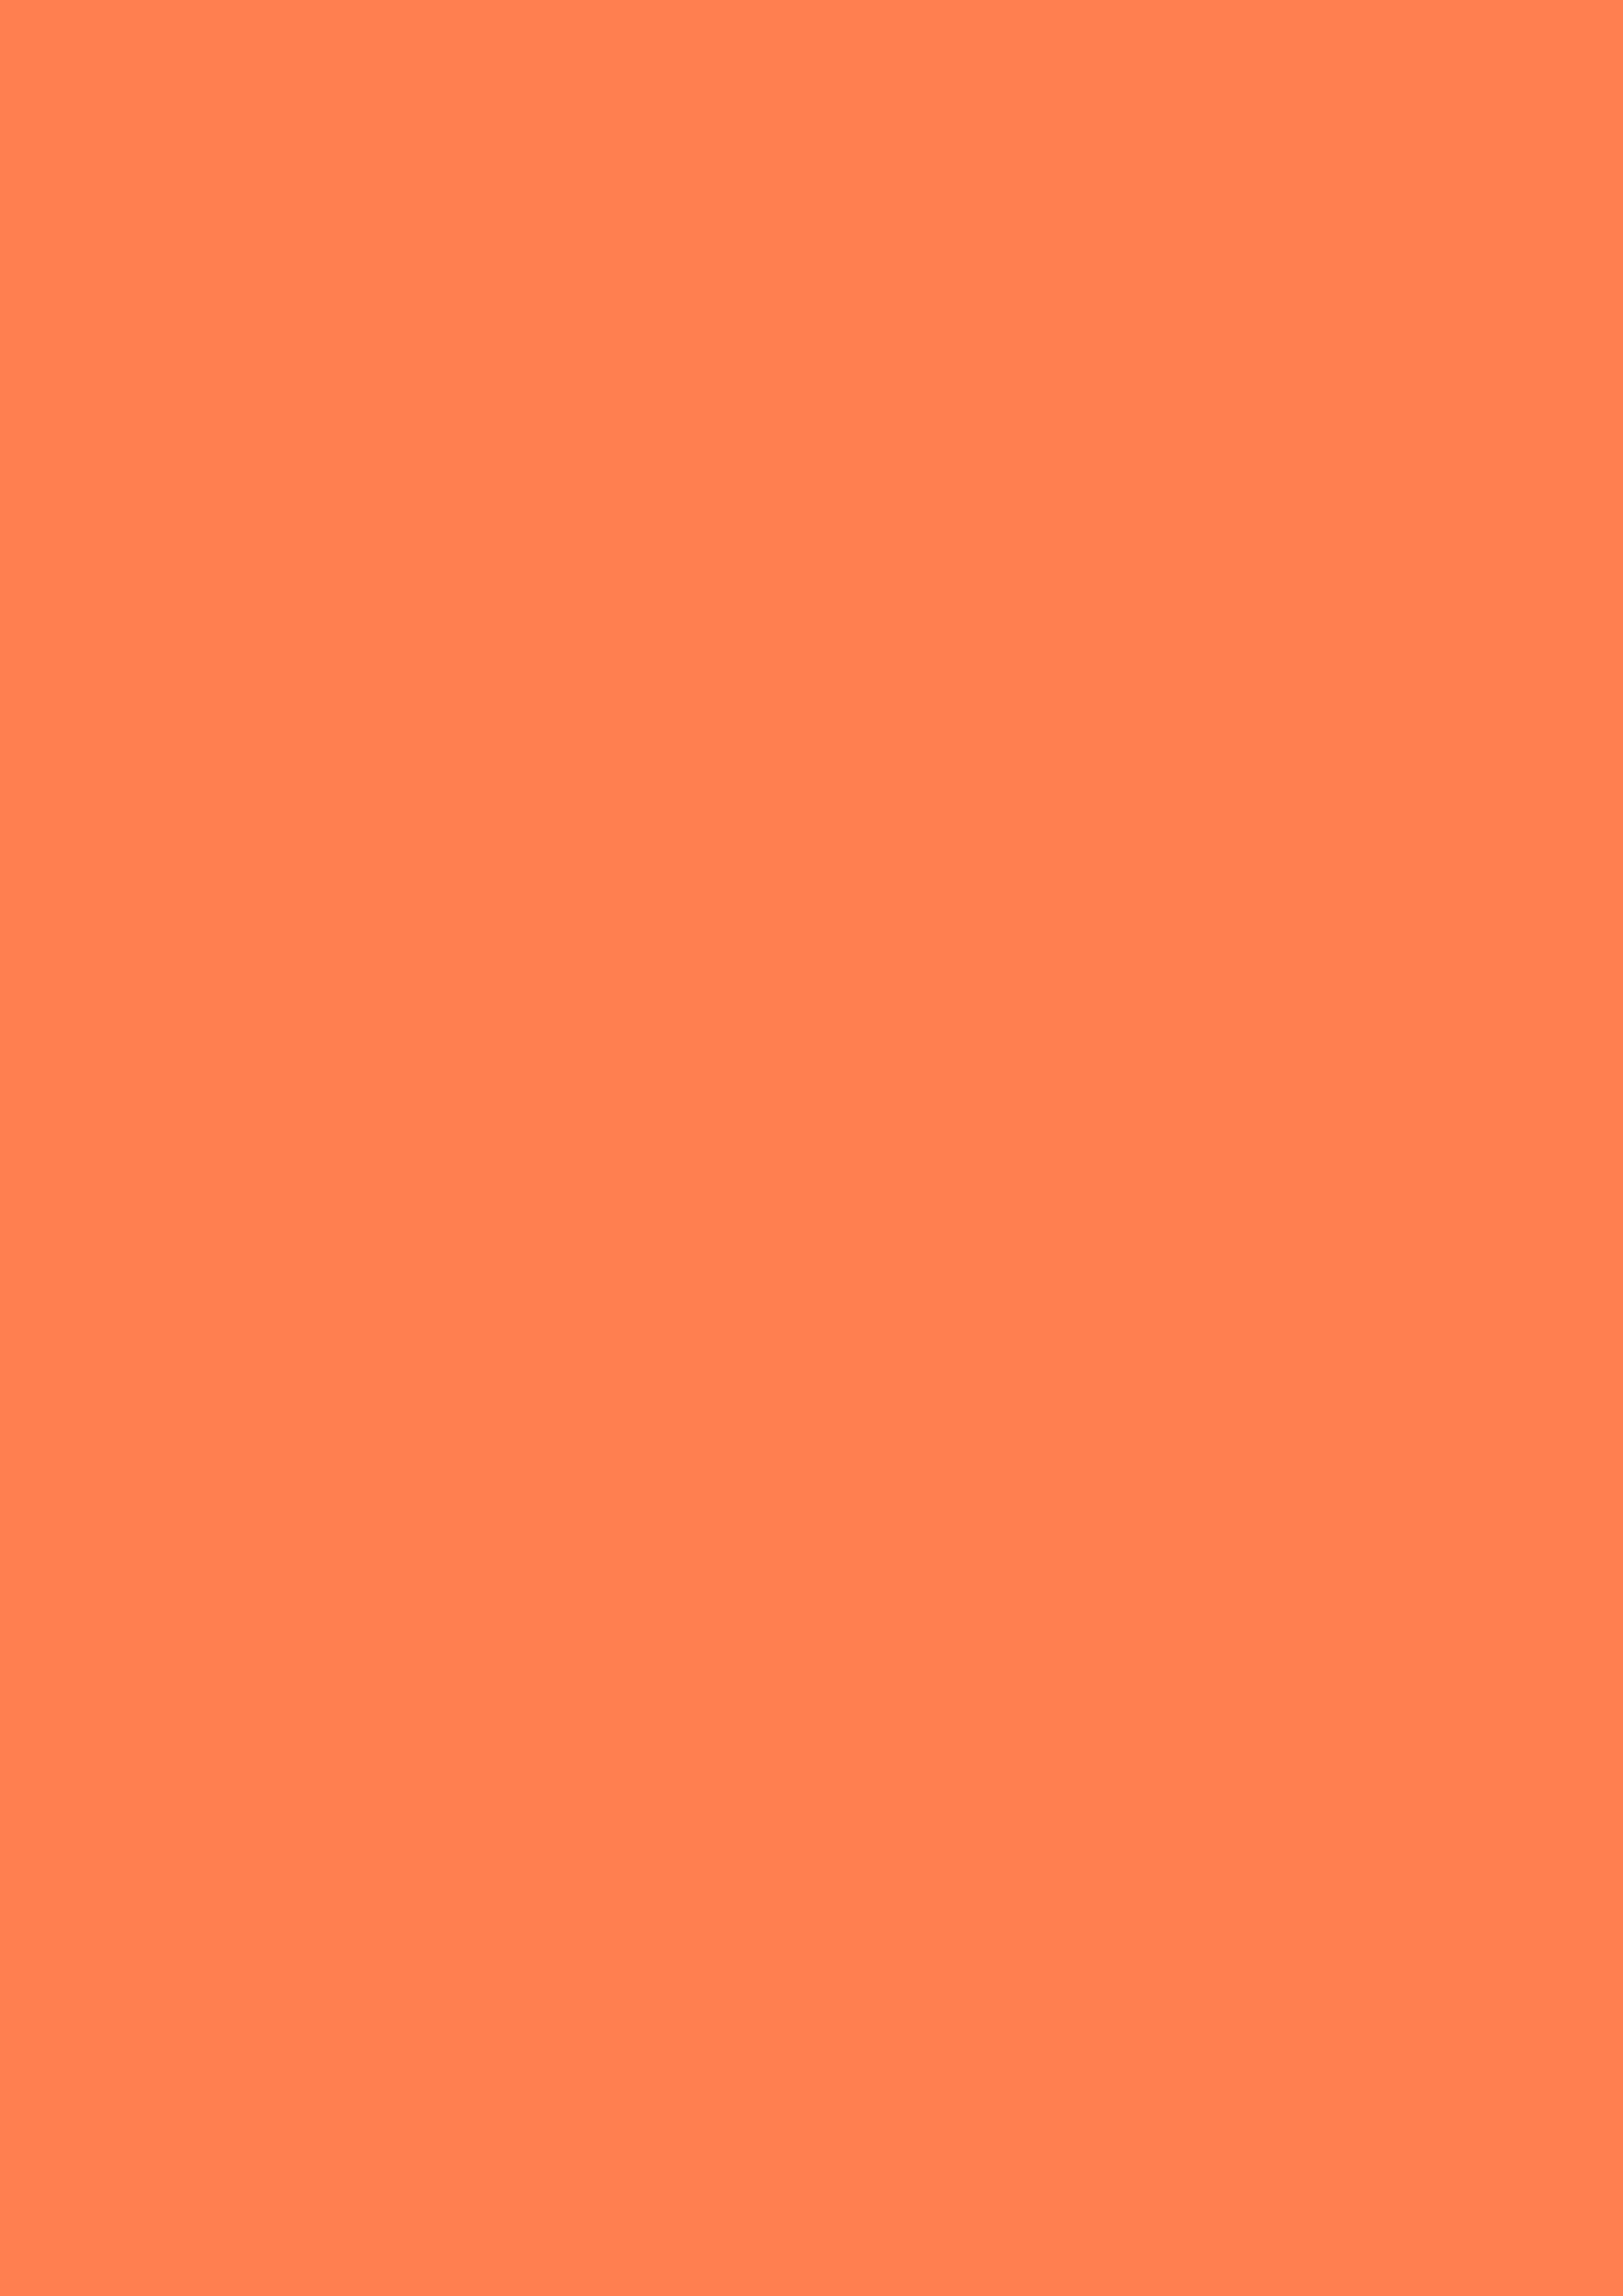 2480x3508 Coral Solid Color Background